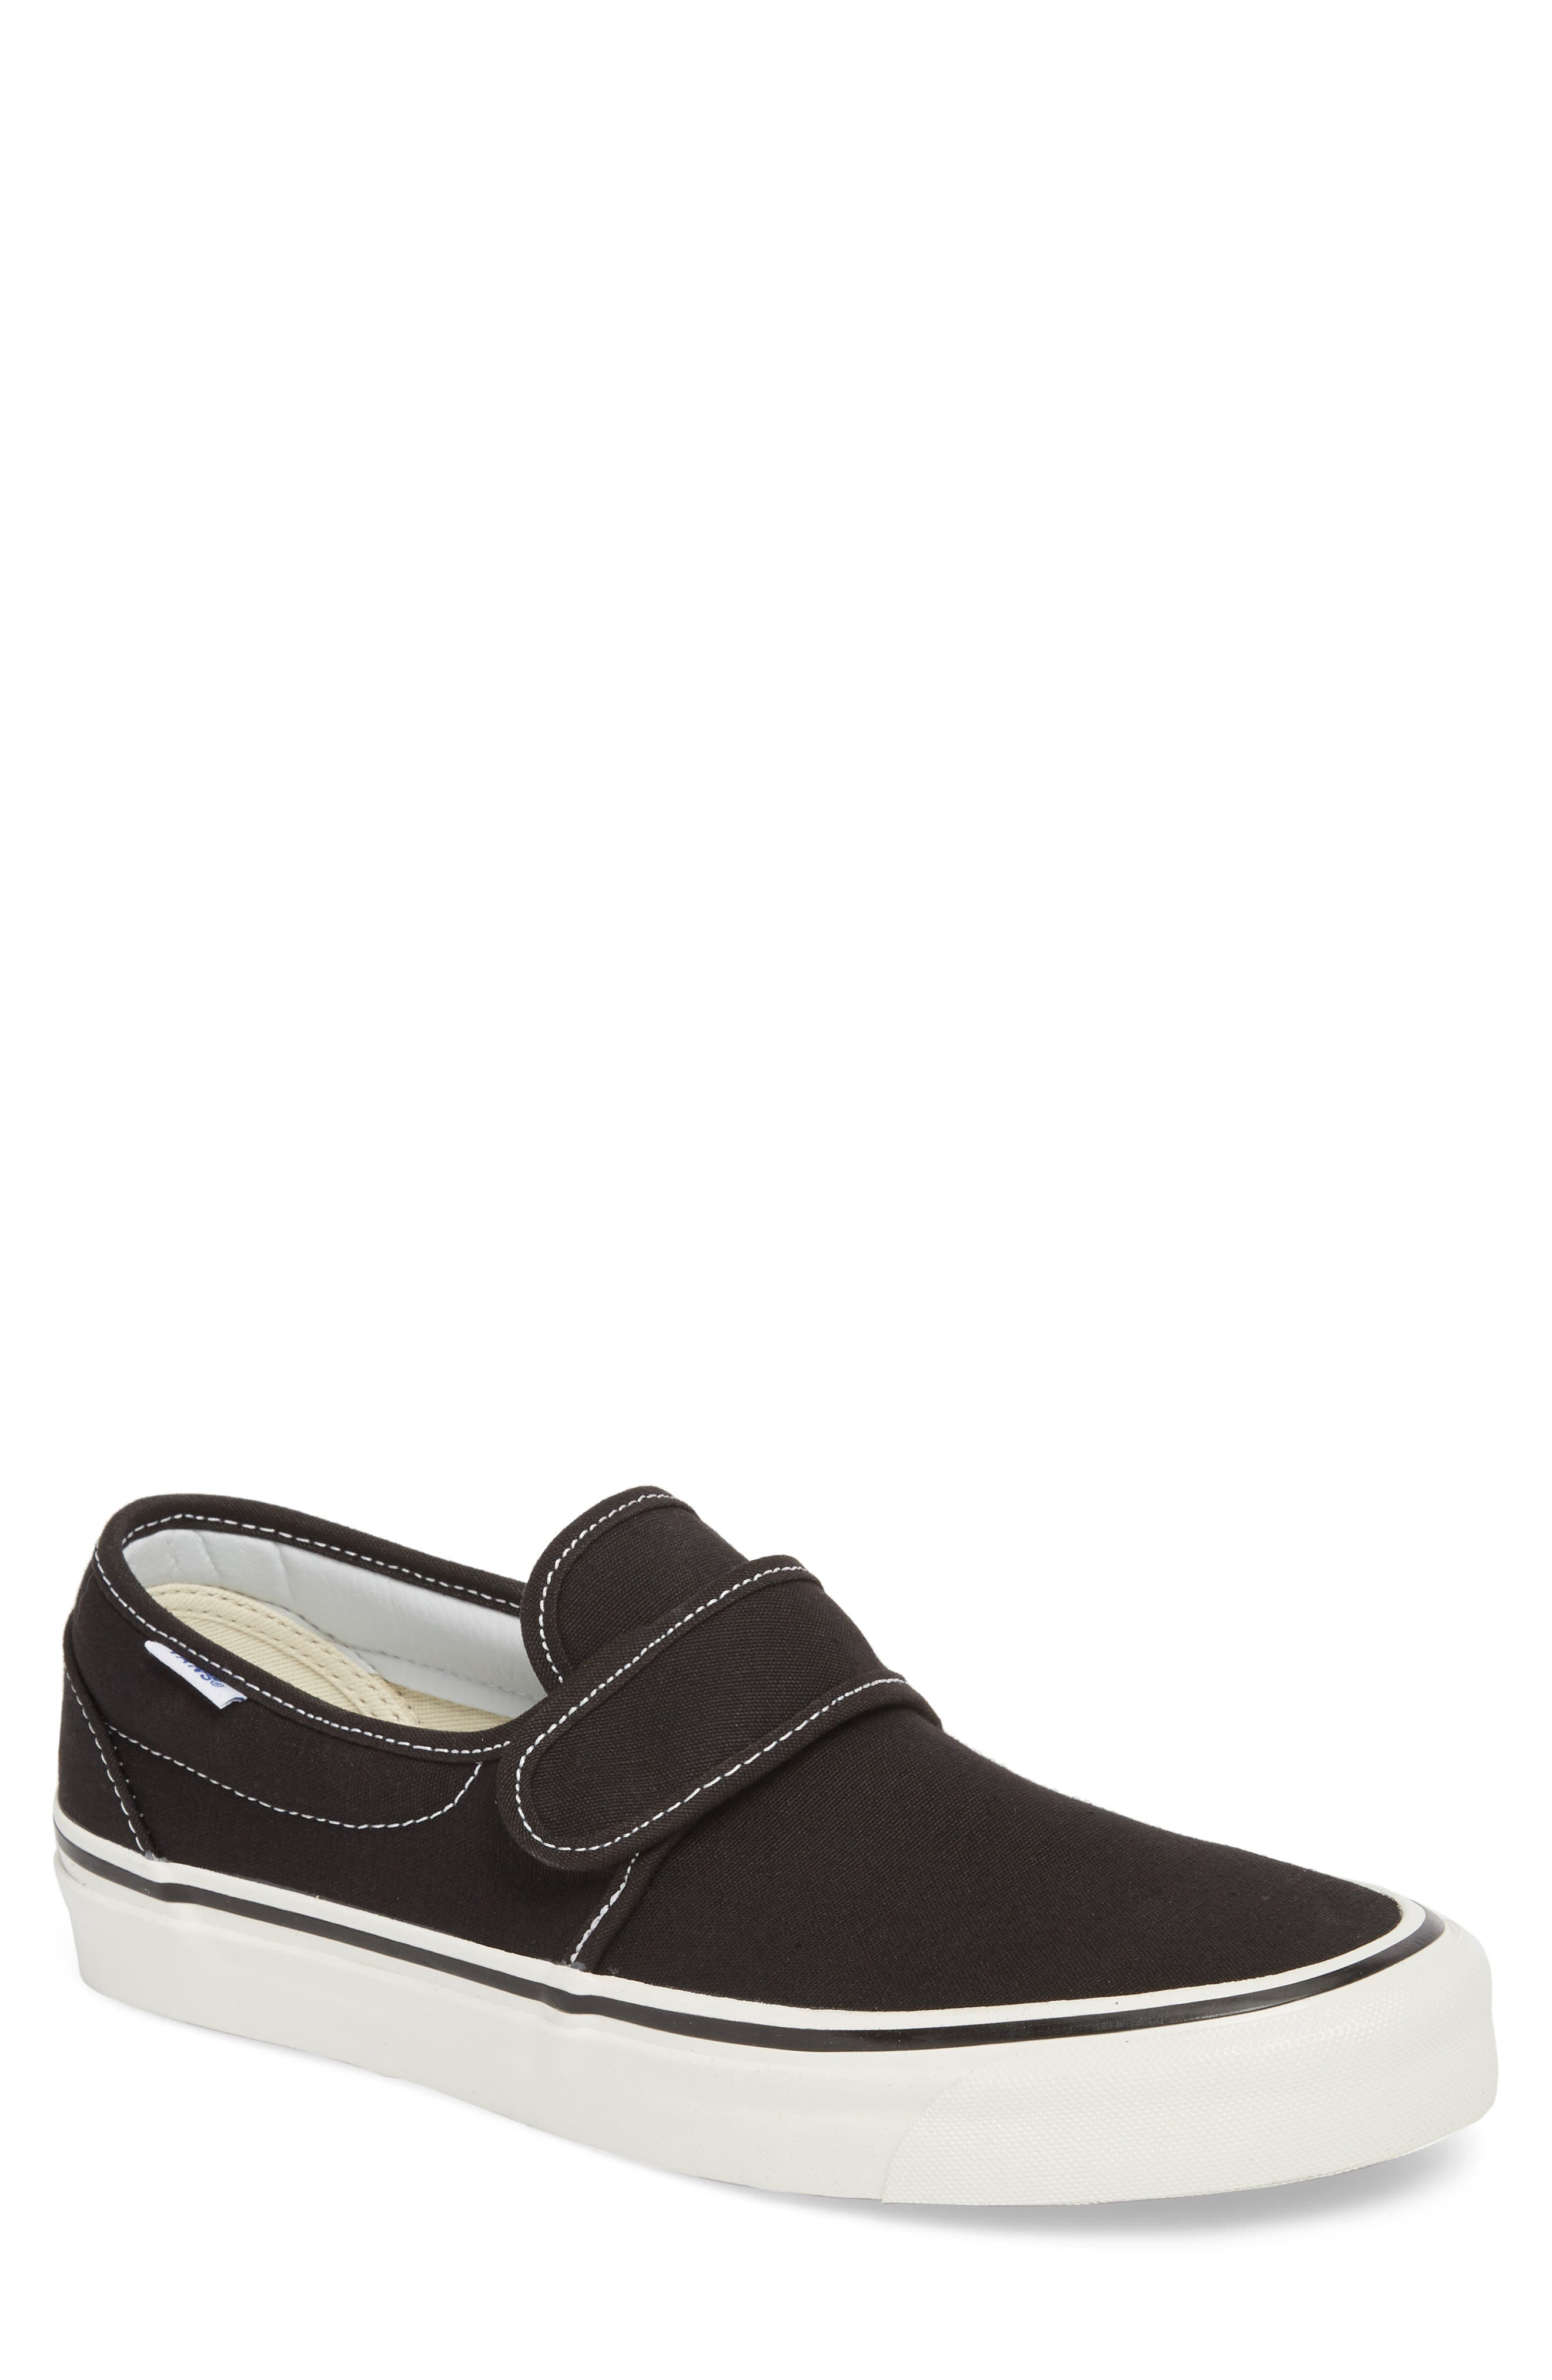 Anaheim Factory Slip-On 47 DX Sneaker,                         Main,                         color, 001